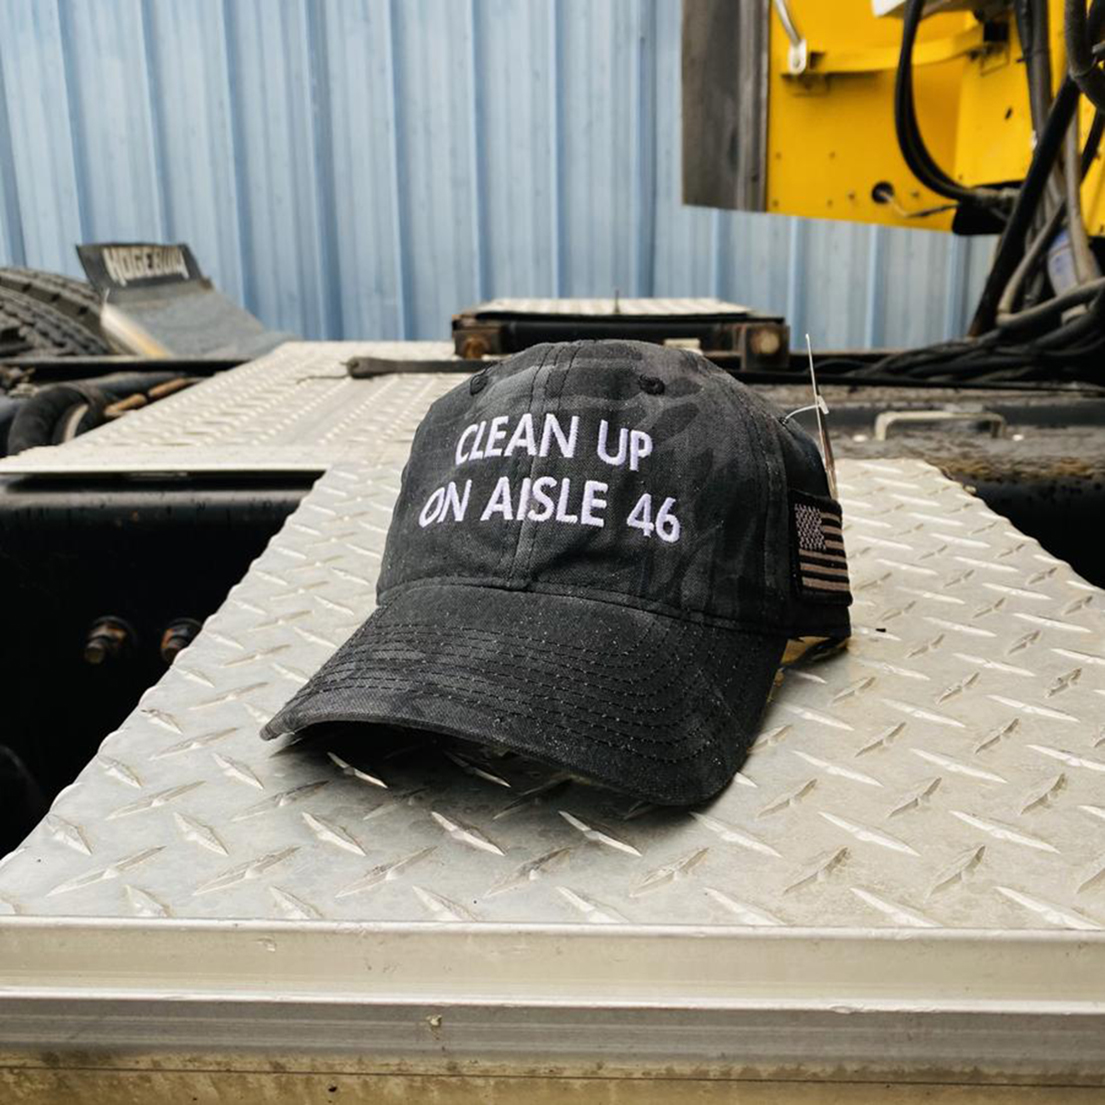 Clean up on aisle 46 hat - Picture 1